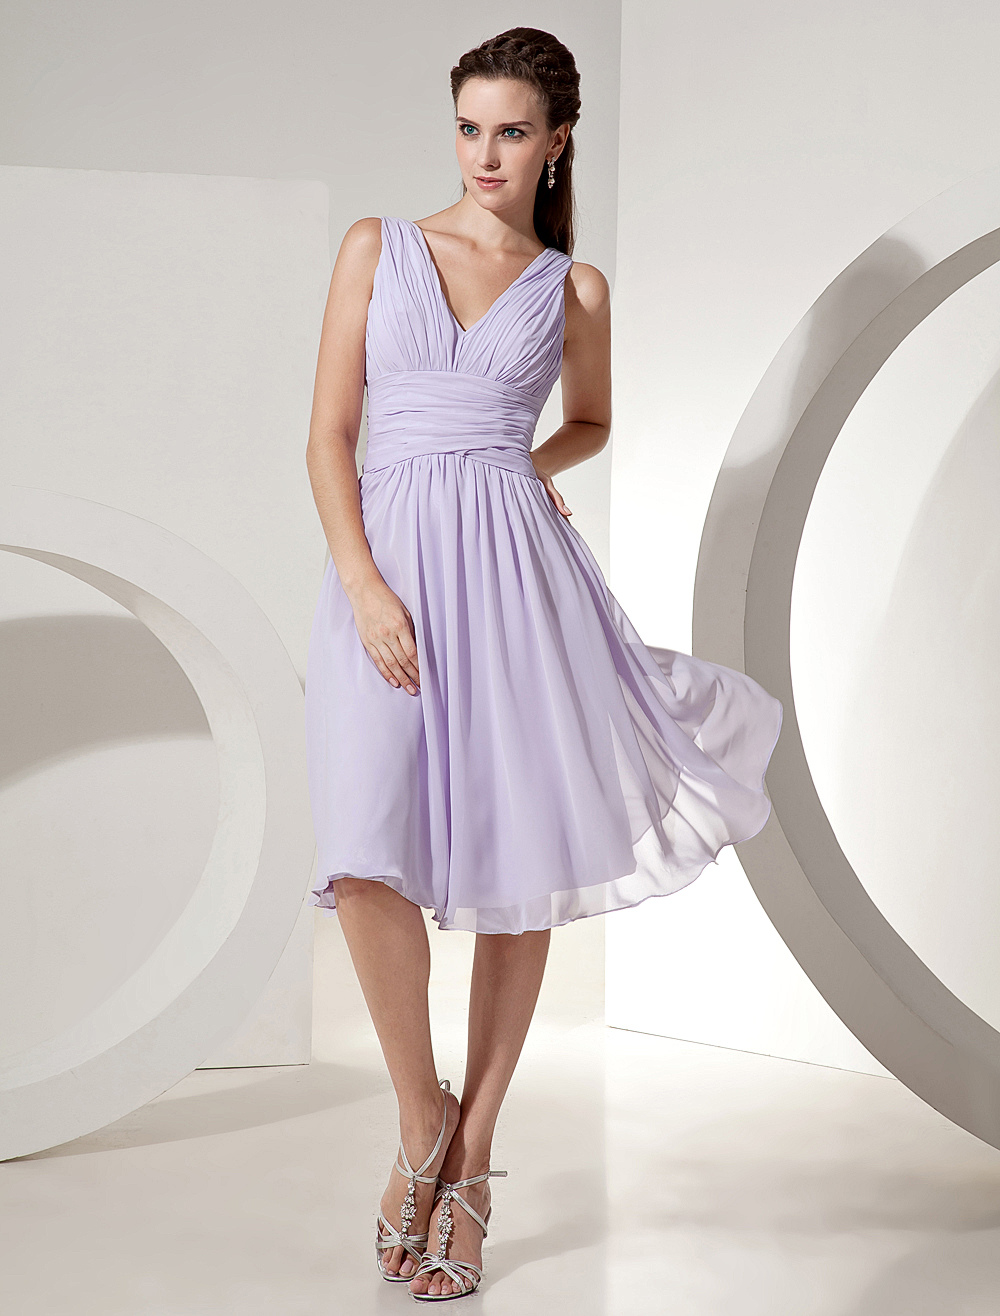 Lilac Bridesmaid Dress V Neck Ruched Chiffon A Line Knee Length Short Prom Dress